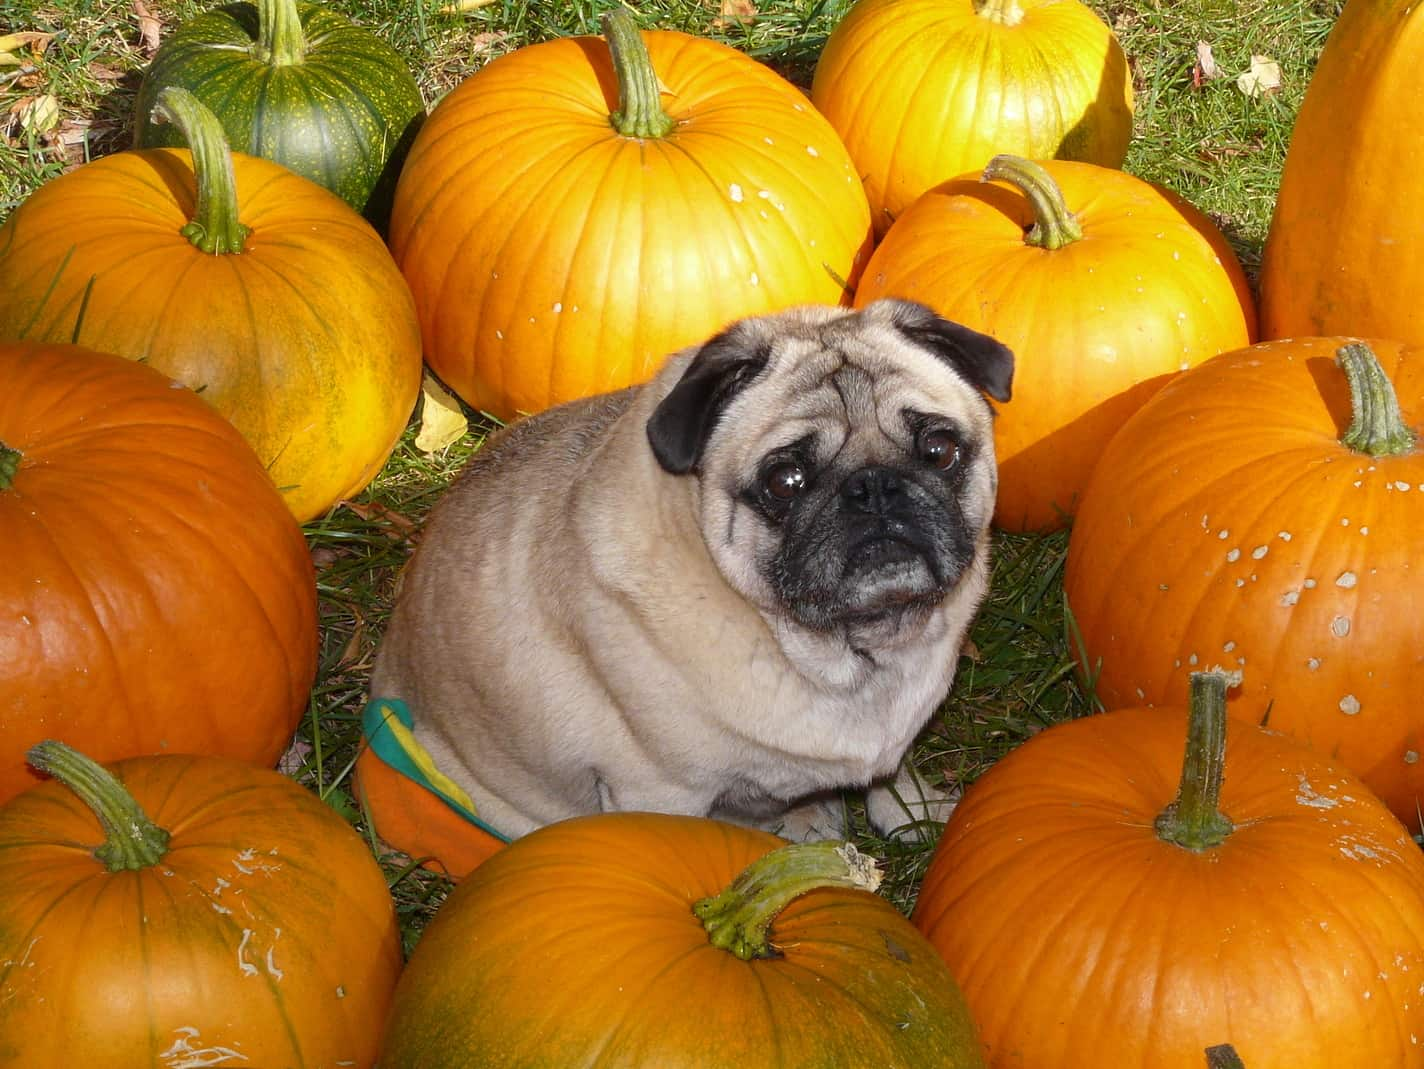 Pug Dog In The Middle Of A Group Of Pumpkins